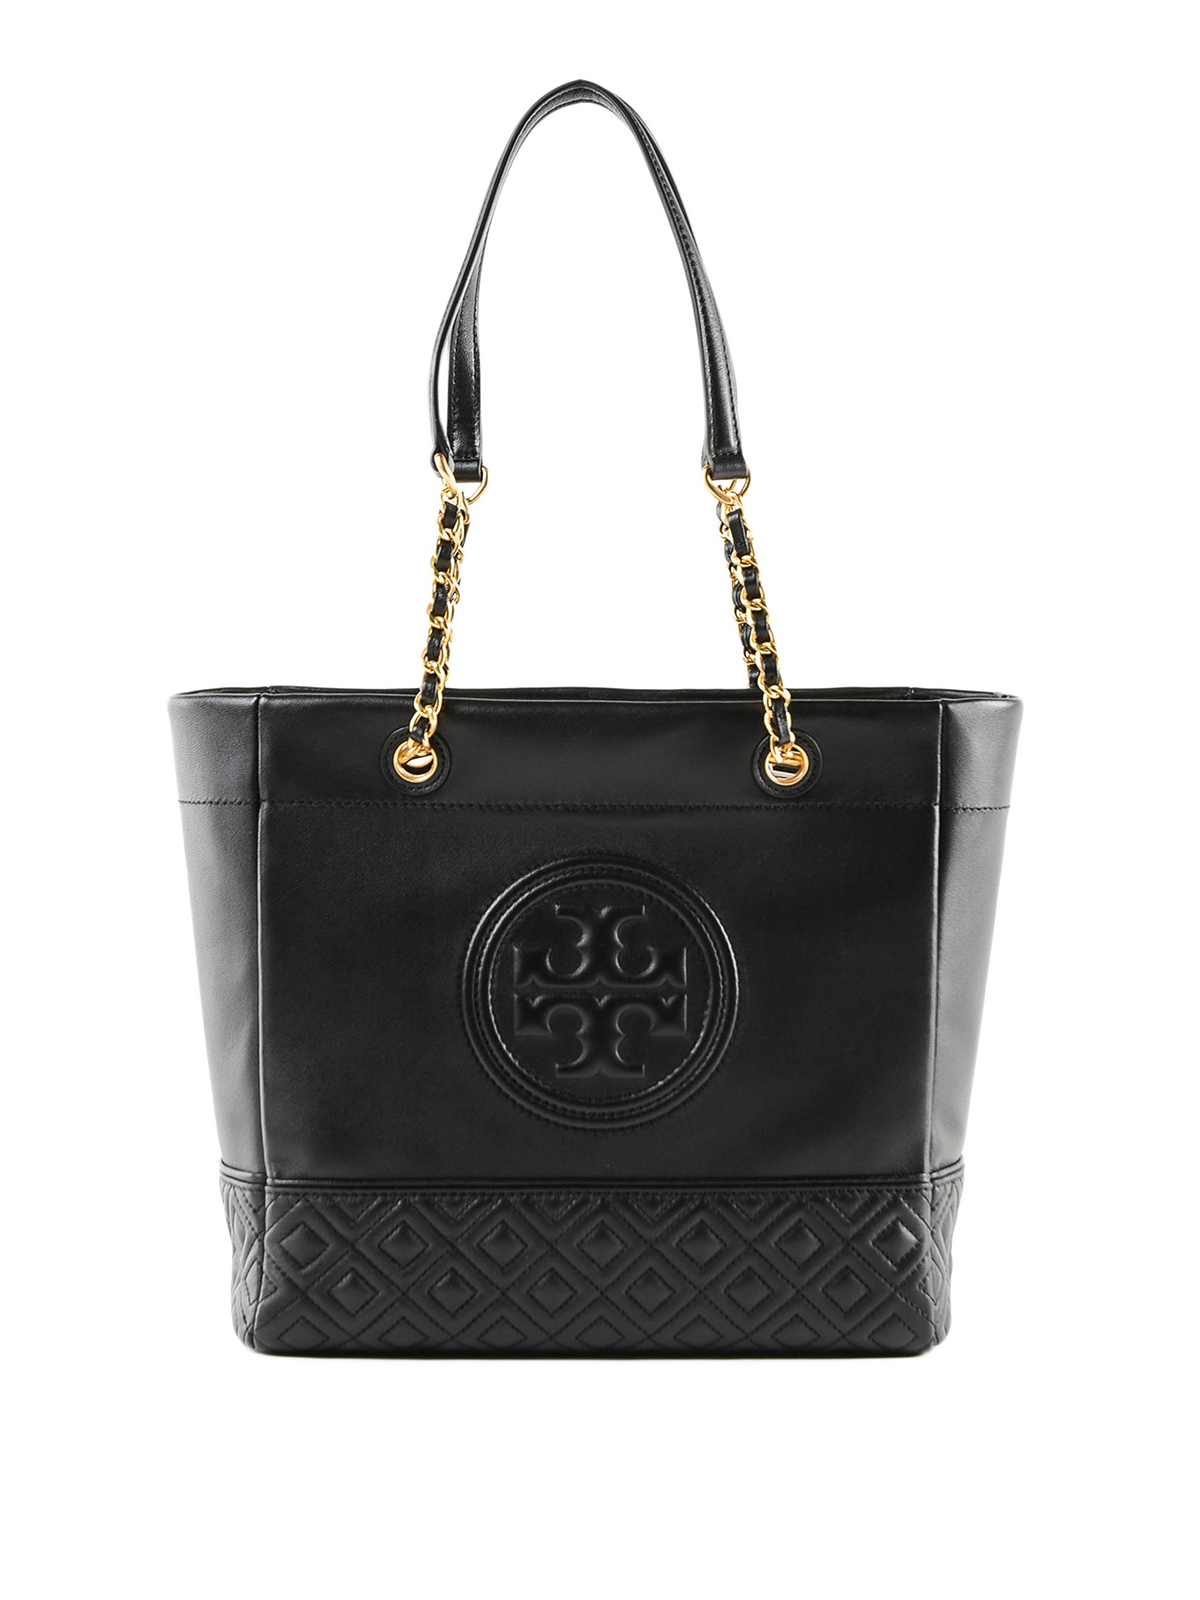 4ee2ed70431 Tory Burch - Fleming golden chain leather tote bag - totes bags ...